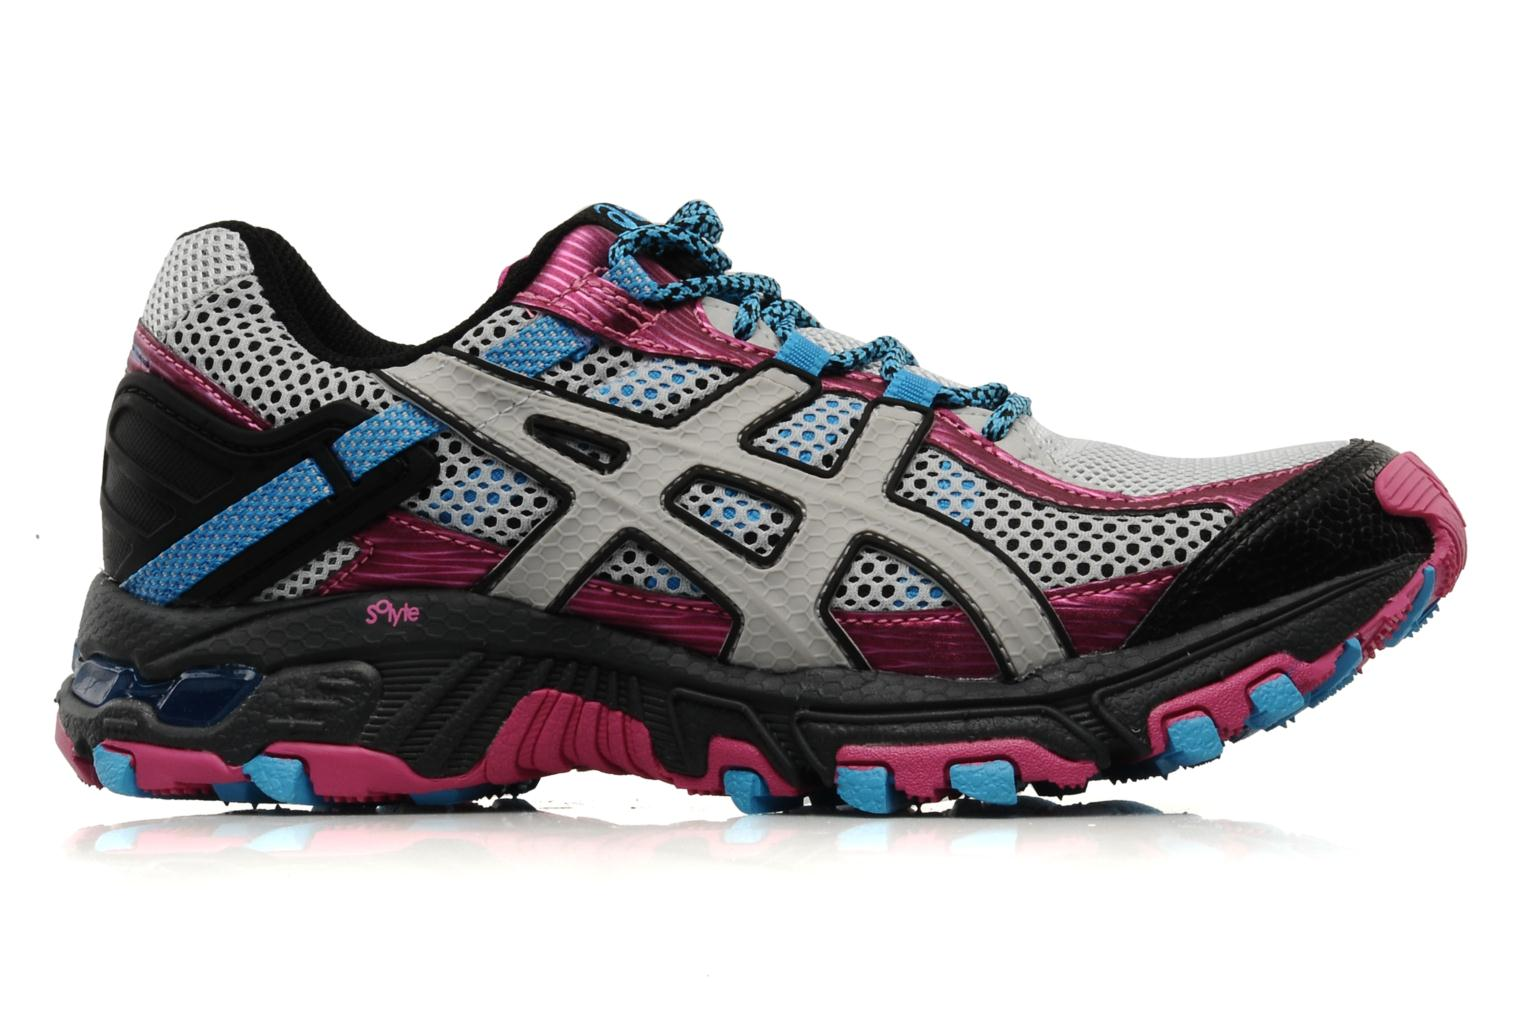 Lady Gel Trabuco 14 Grey/Black/Pink